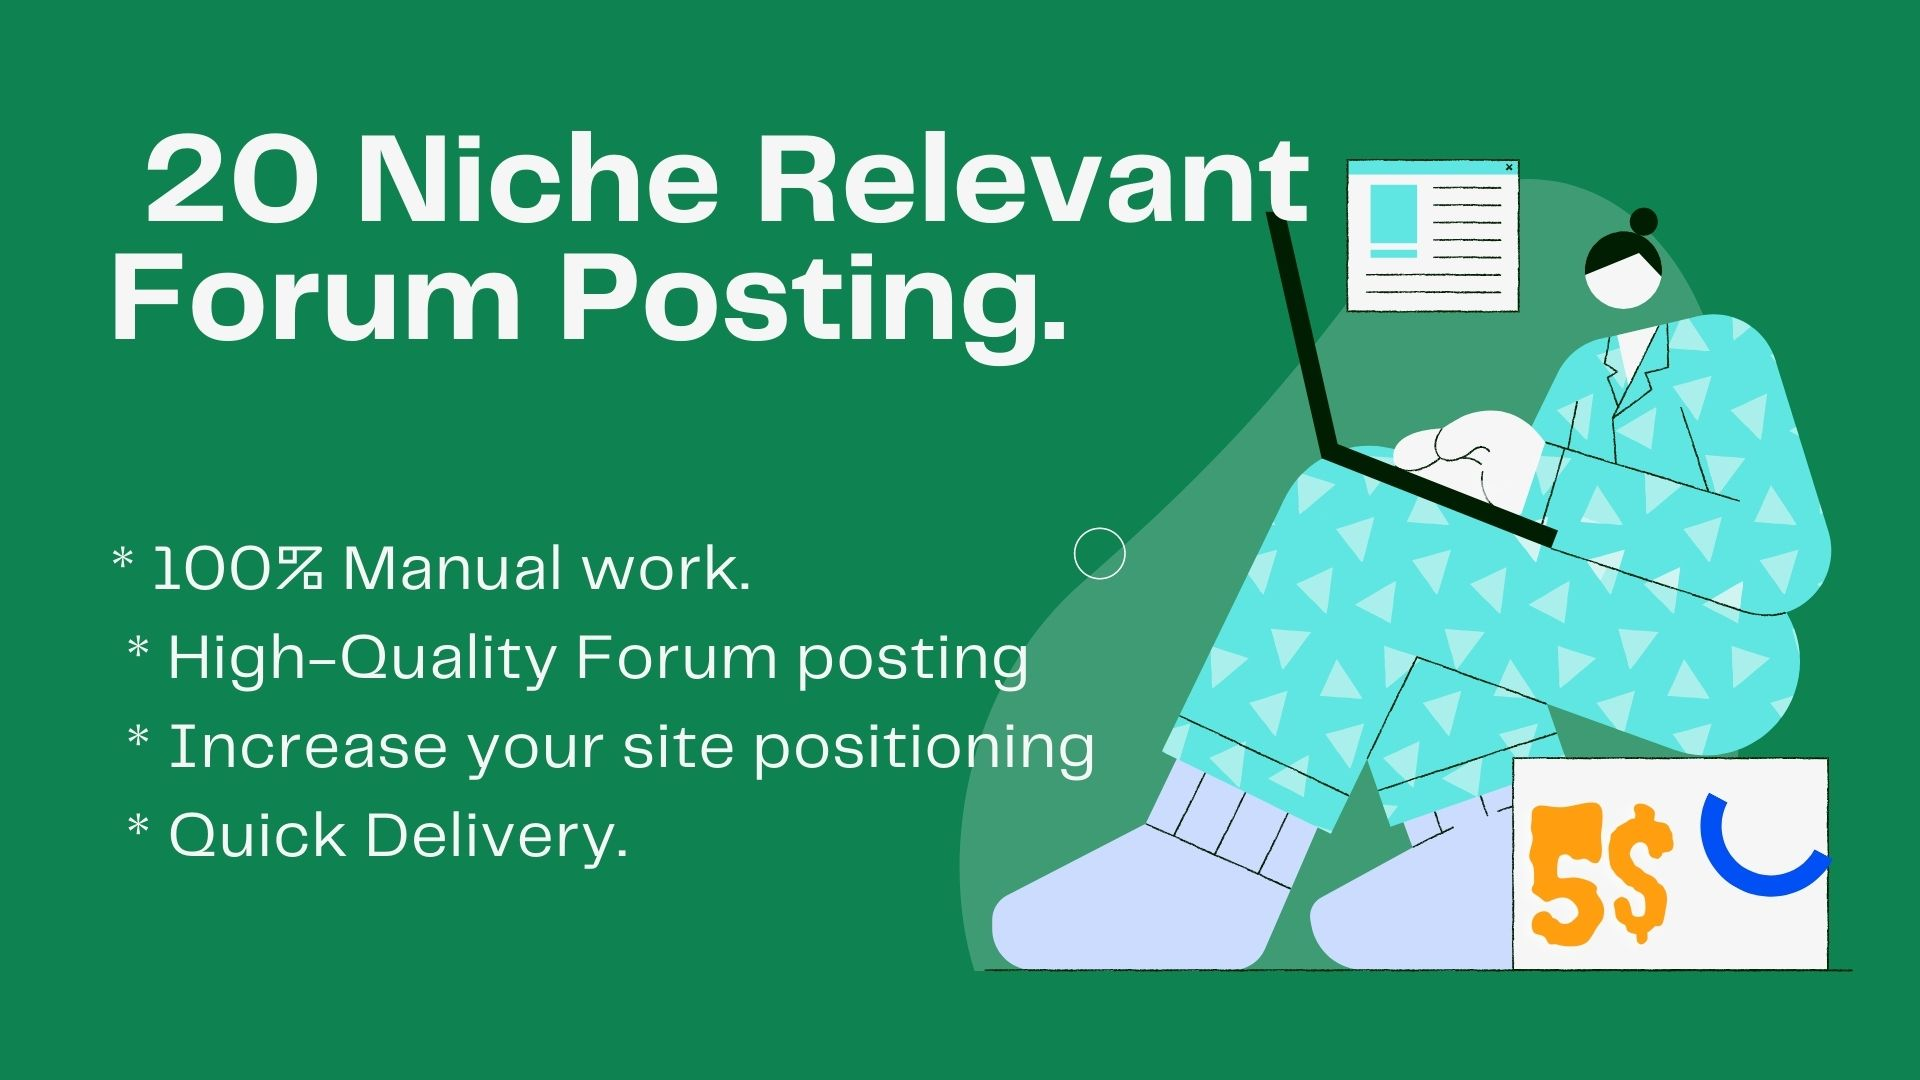 provide you niche relevant 20 forum posting.